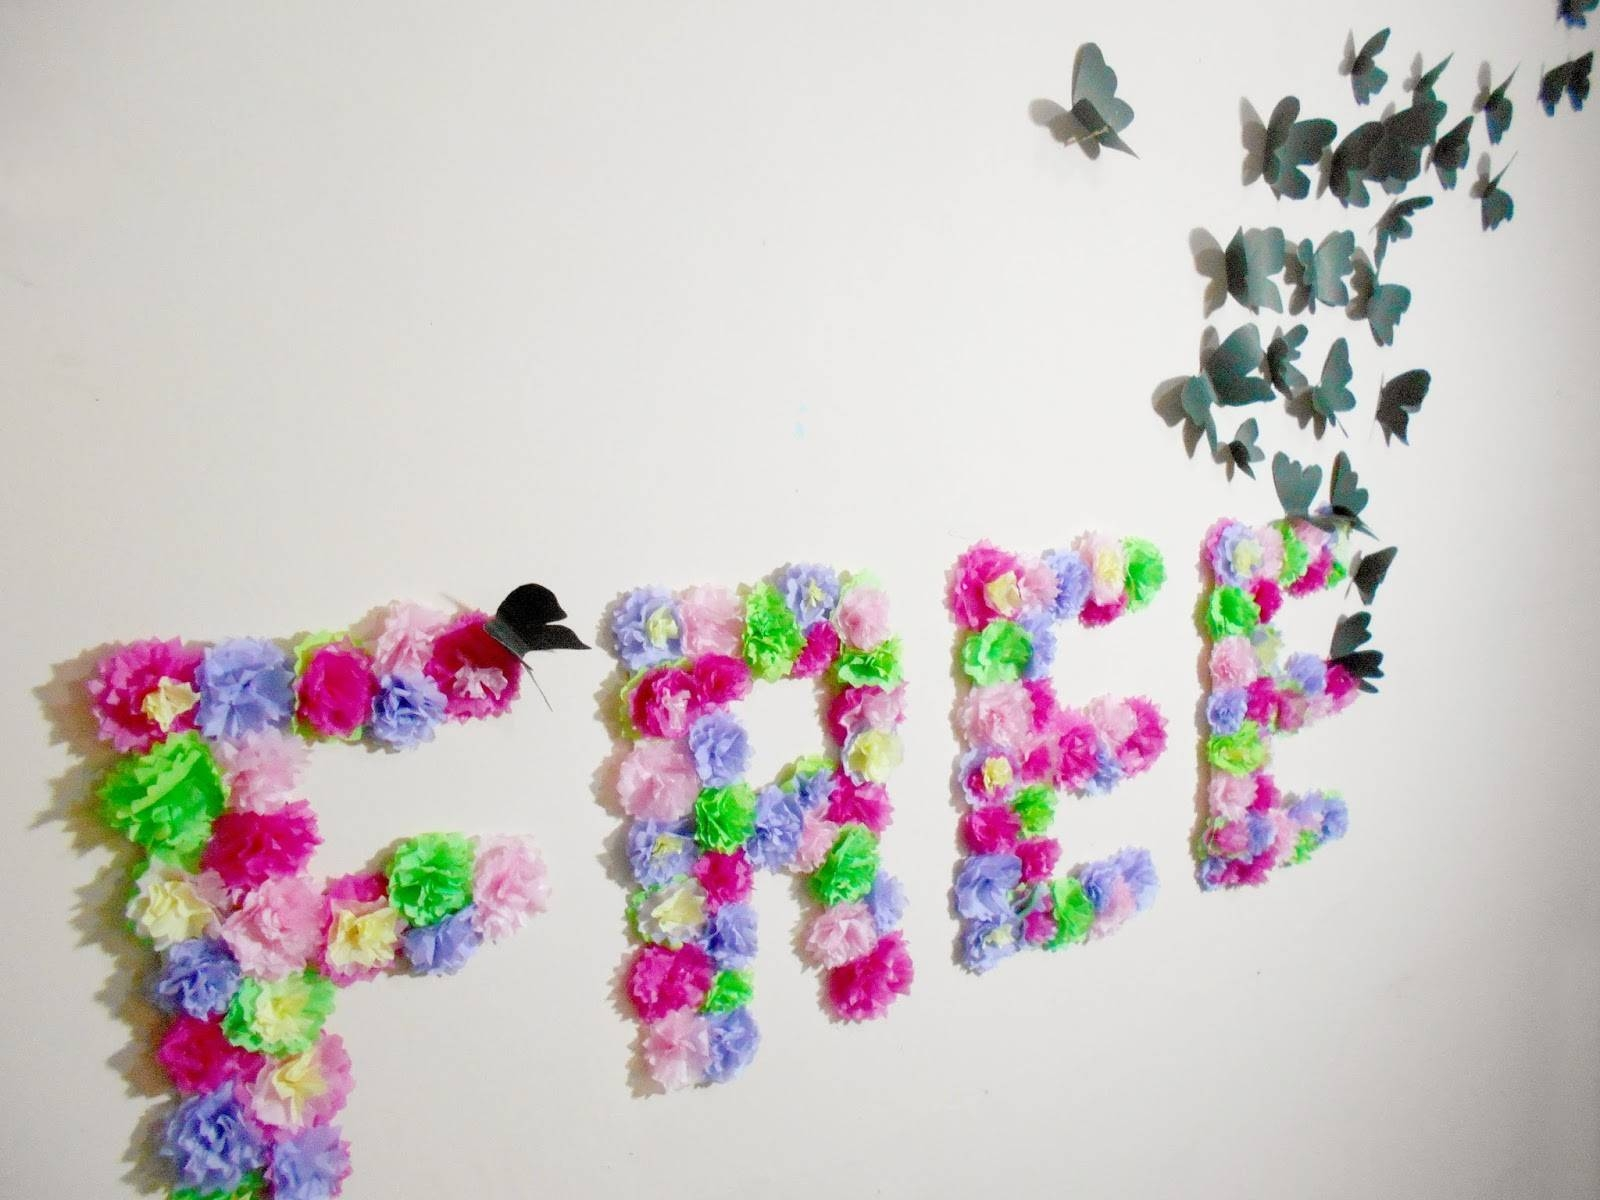 Diy Paper Flowers And Butterflies Wall Art | Room Decoration Idea With Regard To Newest Ceramic Butterfly Wall Art (View 22 of 30)